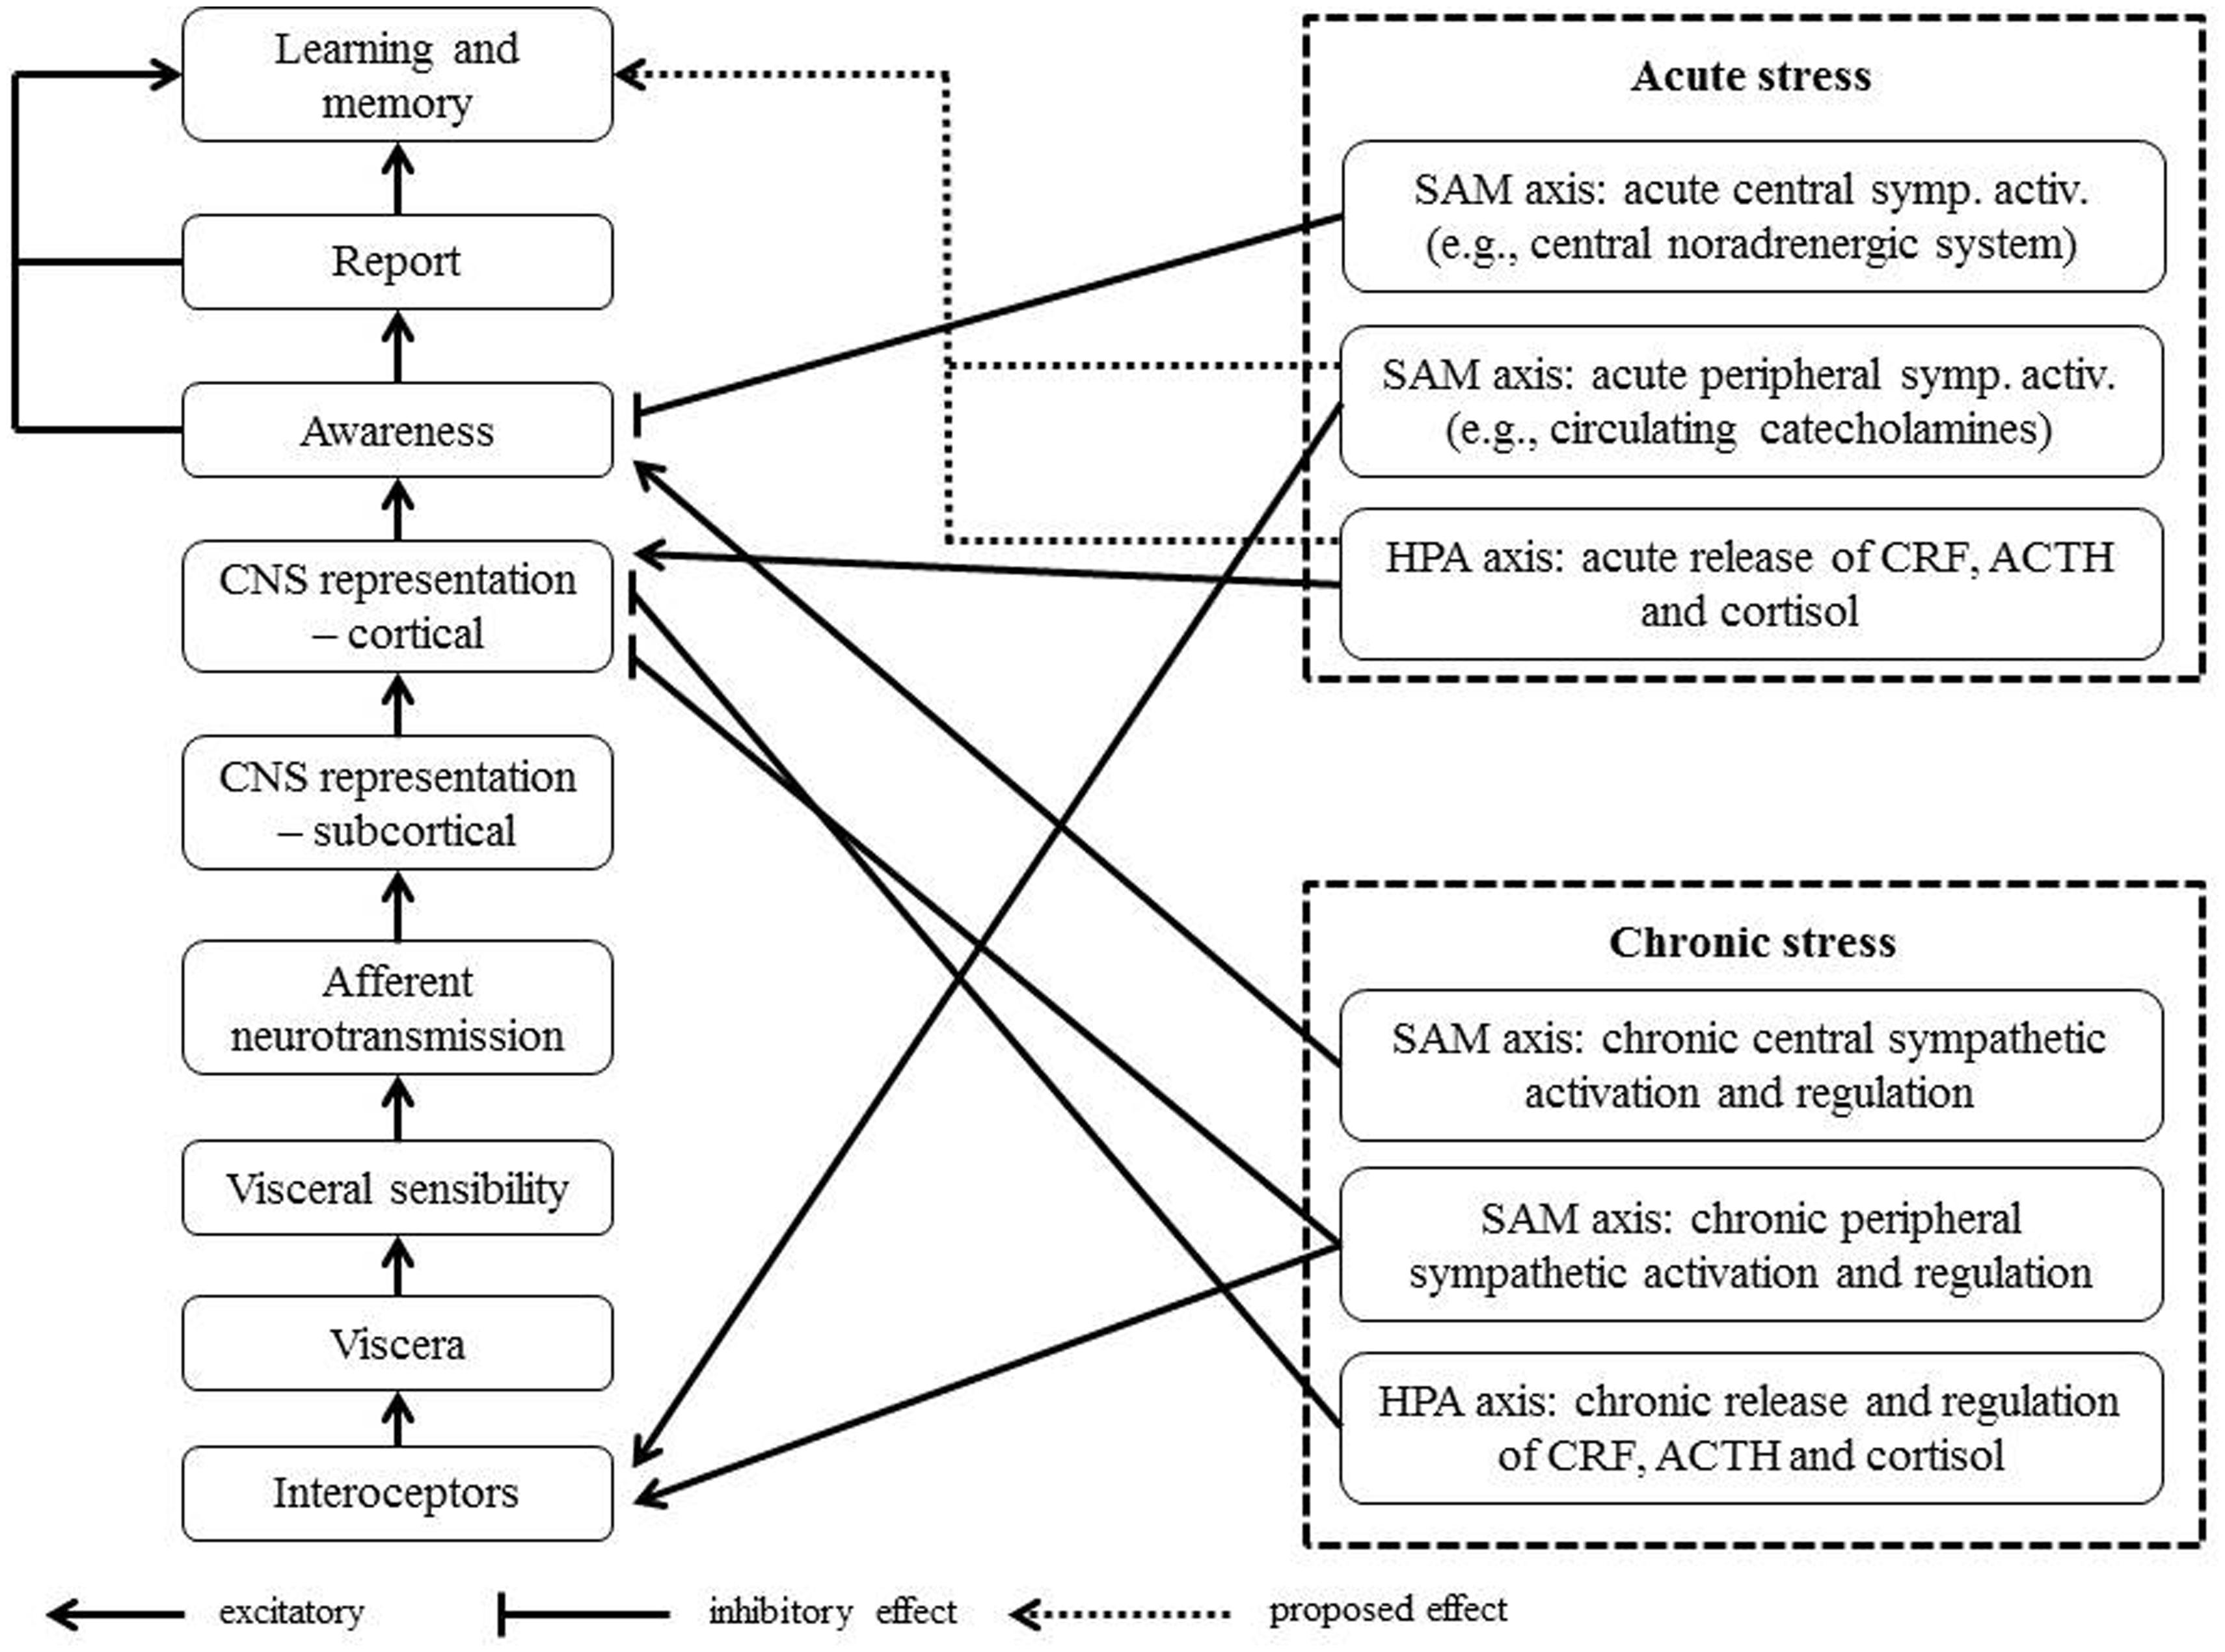 How Do Acute And Chronic Stress Impact >> Frontiers Interoception And Stress Psychology